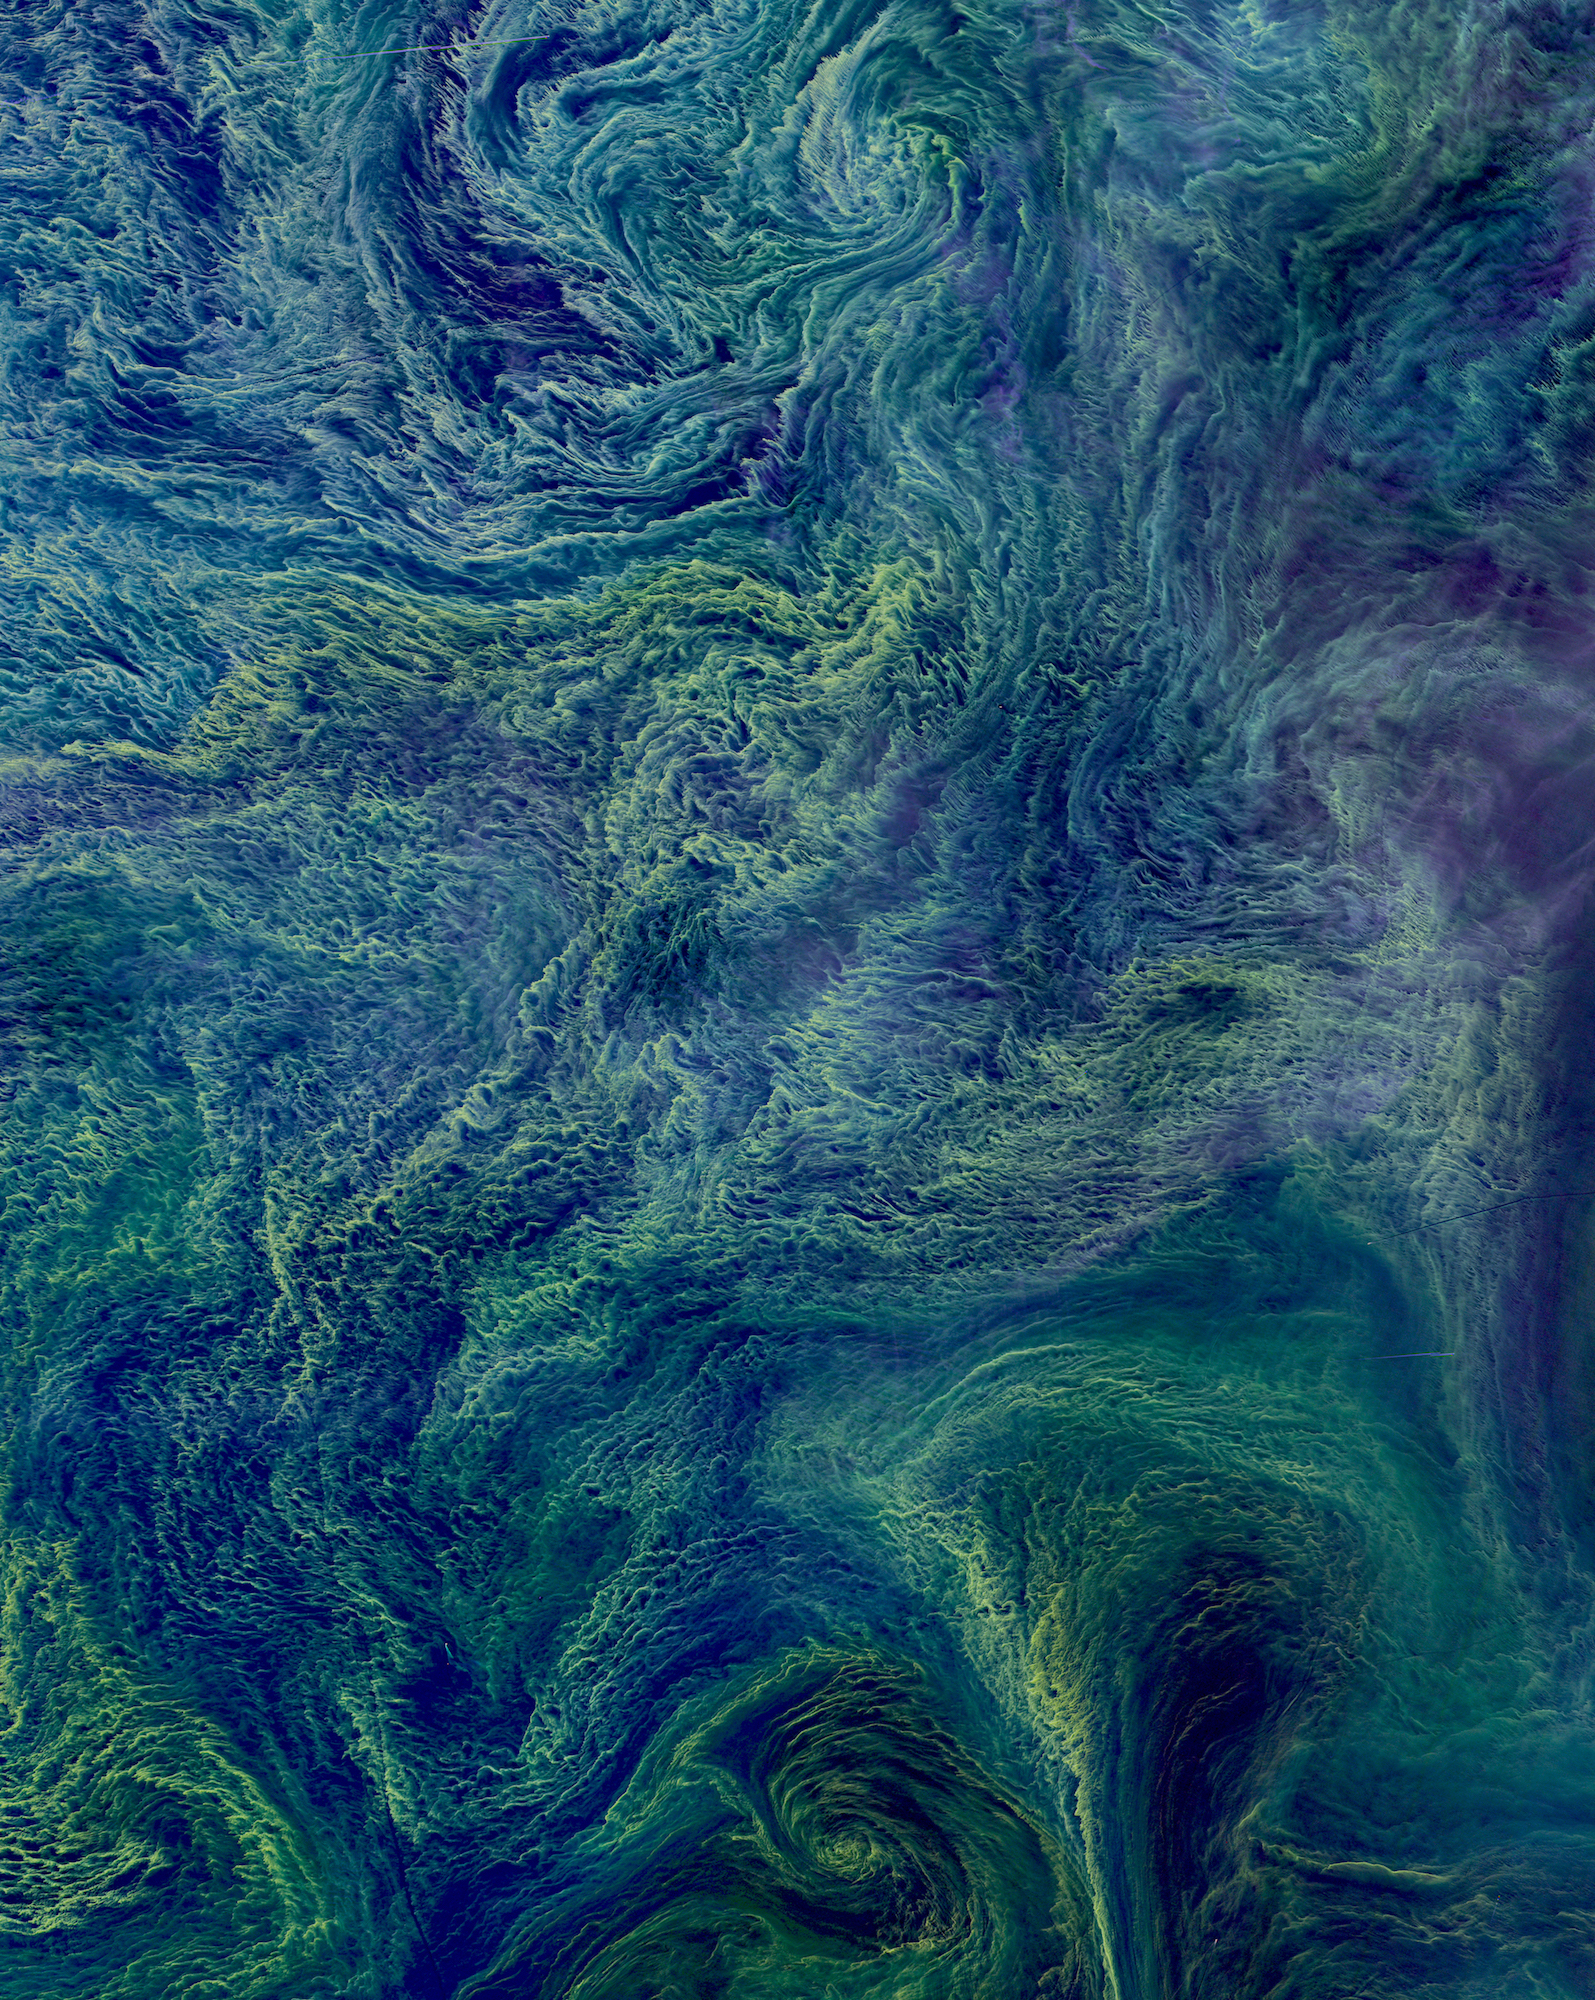 Before you even ask, this is indeed a real image of Earth! In August 2015 a massive bloom of cyanobacteria - more than 100 square kilometers - was seen in the Baltic Sea. Cyanobacteria are a type of marine bacteria that capture and store solar energy through photosynthesis. While some are toxic to humans and animals, large blooms can cause an oxygen-depleted dead zone where other organisms cannot survive. Scientists believe that blooms are more likely to form in the presence agricultural and industrial run-off or from cruise ships that provide excessive nutrients for the bacteria through the dumping of sewage.  Source imagery: NASA